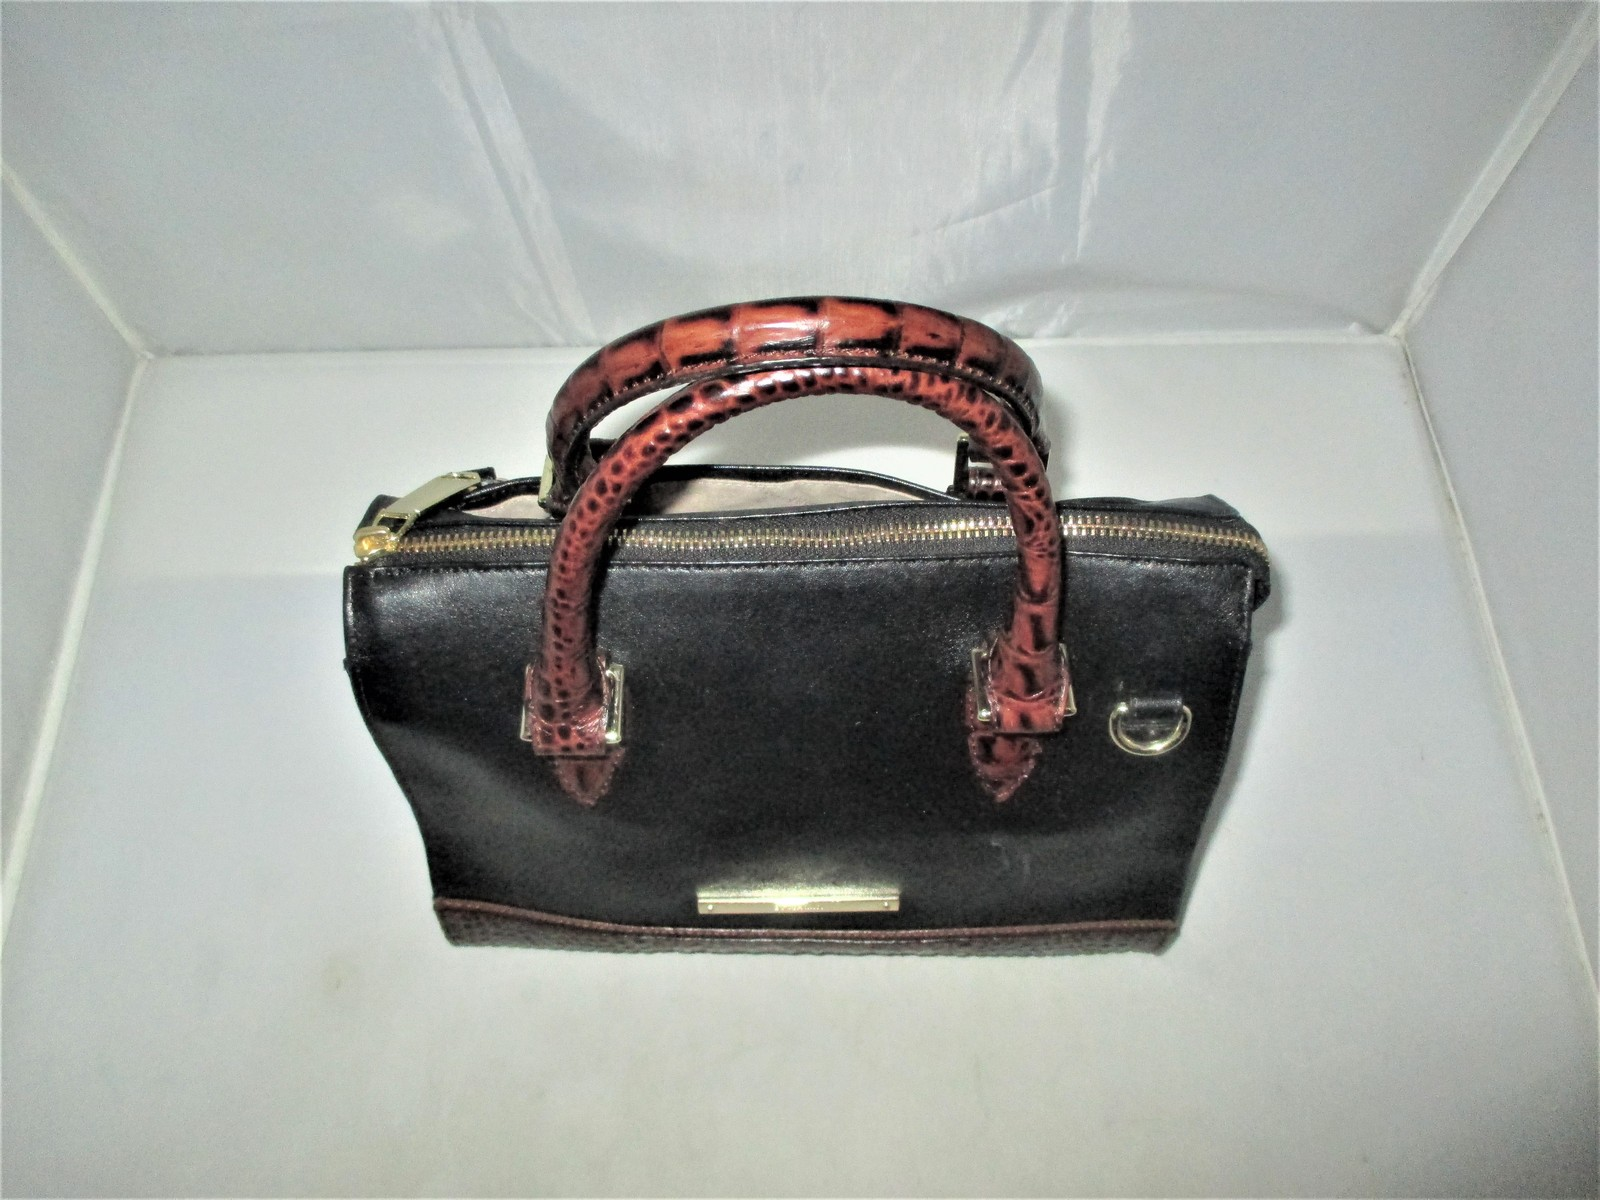 Brahmin Tuscan Tri-Texture Anywhere Convertible Satchel, Shoulder Bag,Tote $255 image 5